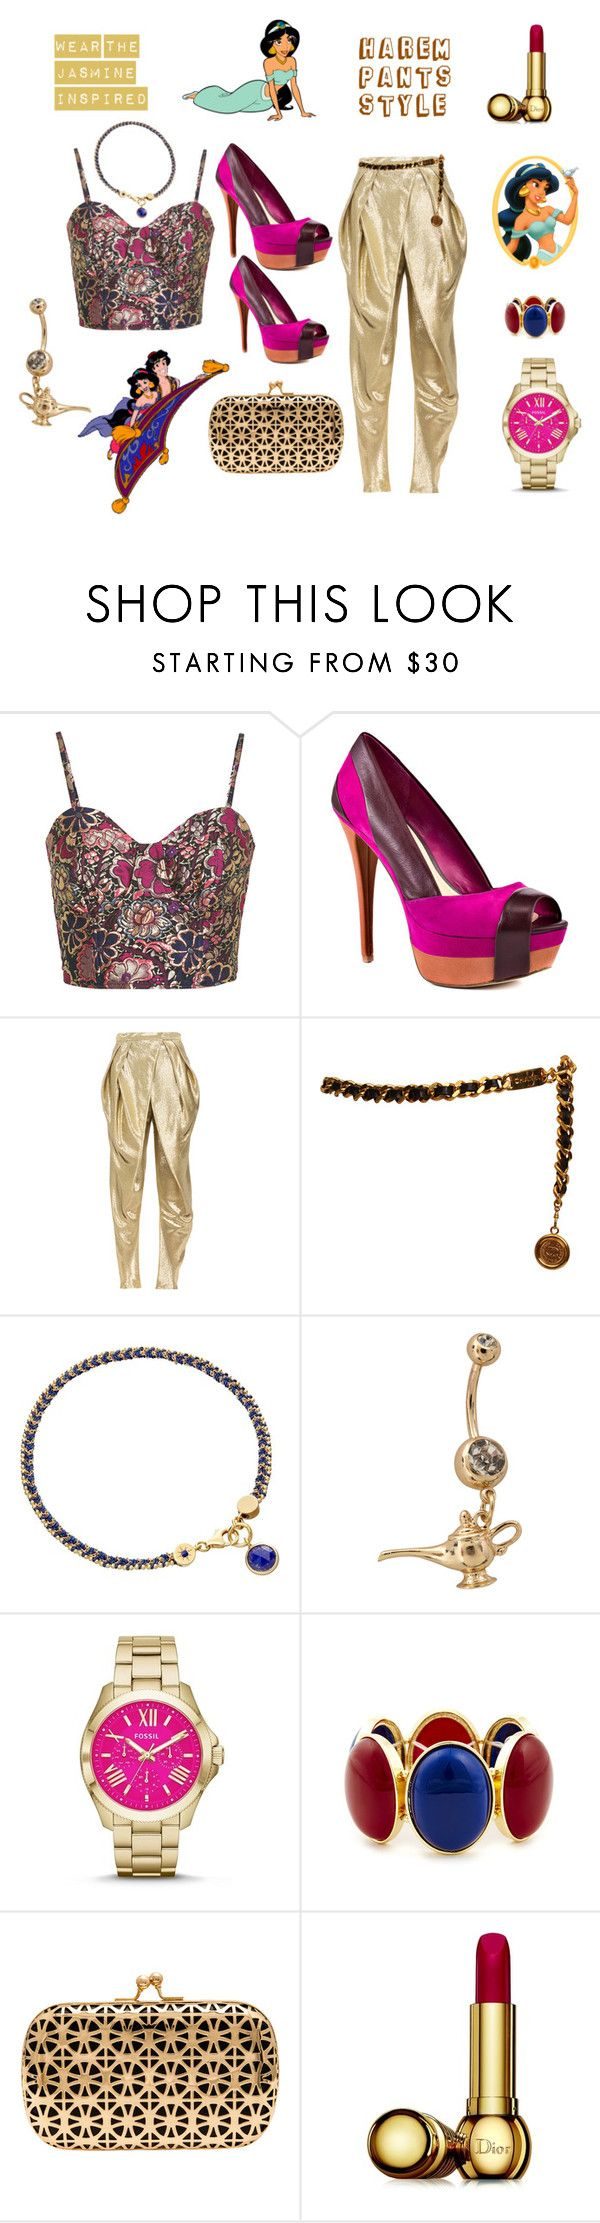 """fantasy"" by amruta-23 ❤ liked on Polyvore featuring Miss Selfridge, Jessica Simpson, Balmain, Chanel, Astley Clarke, FOSSIL, Sole Society, Urban Expressions, Disney and Christian Dior"